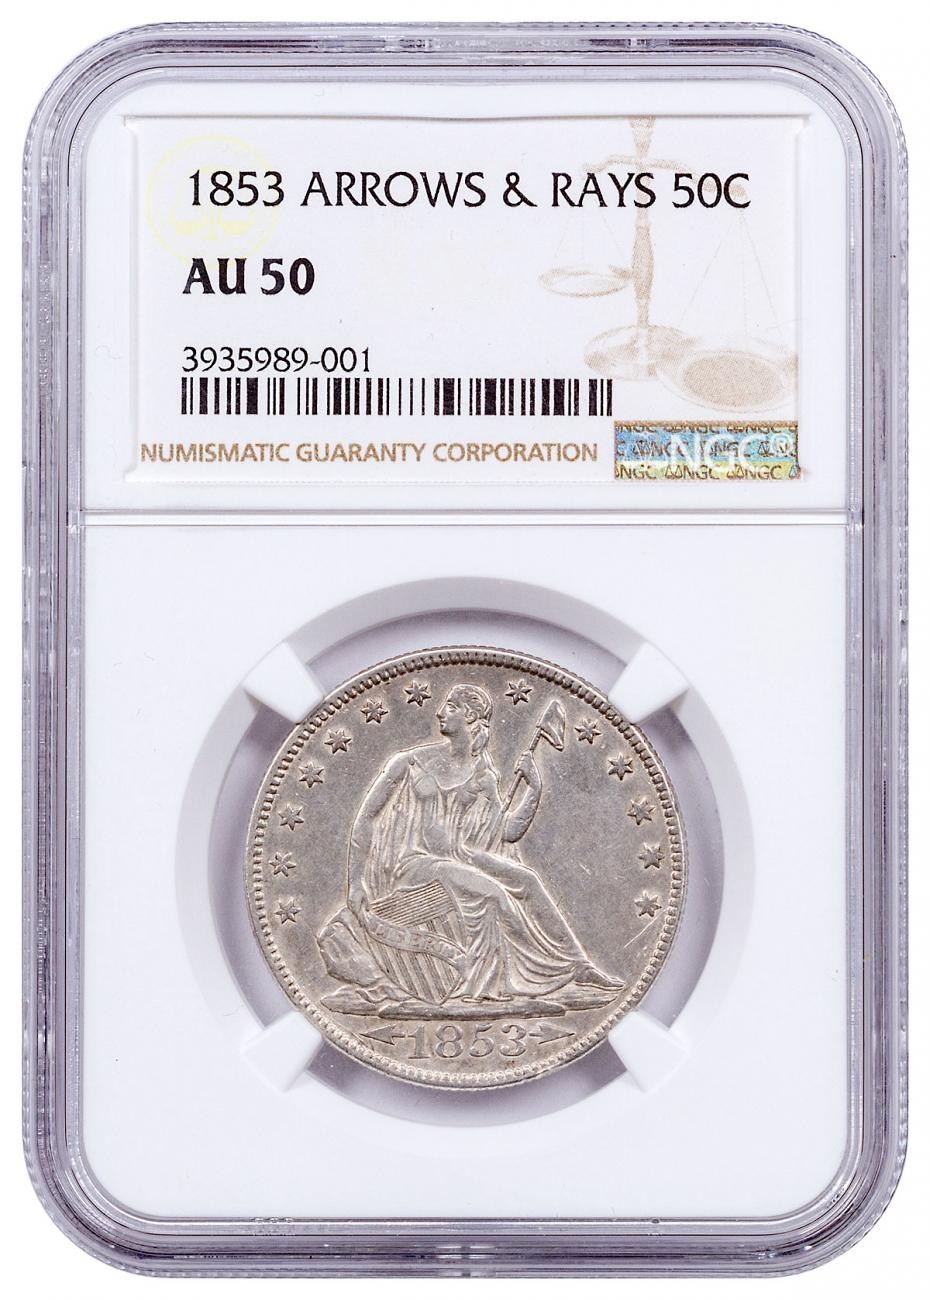 1853 Silver Arrows and Rays Seated Liberty Half Dollar NGC AU50 1 Year Mint Issue!